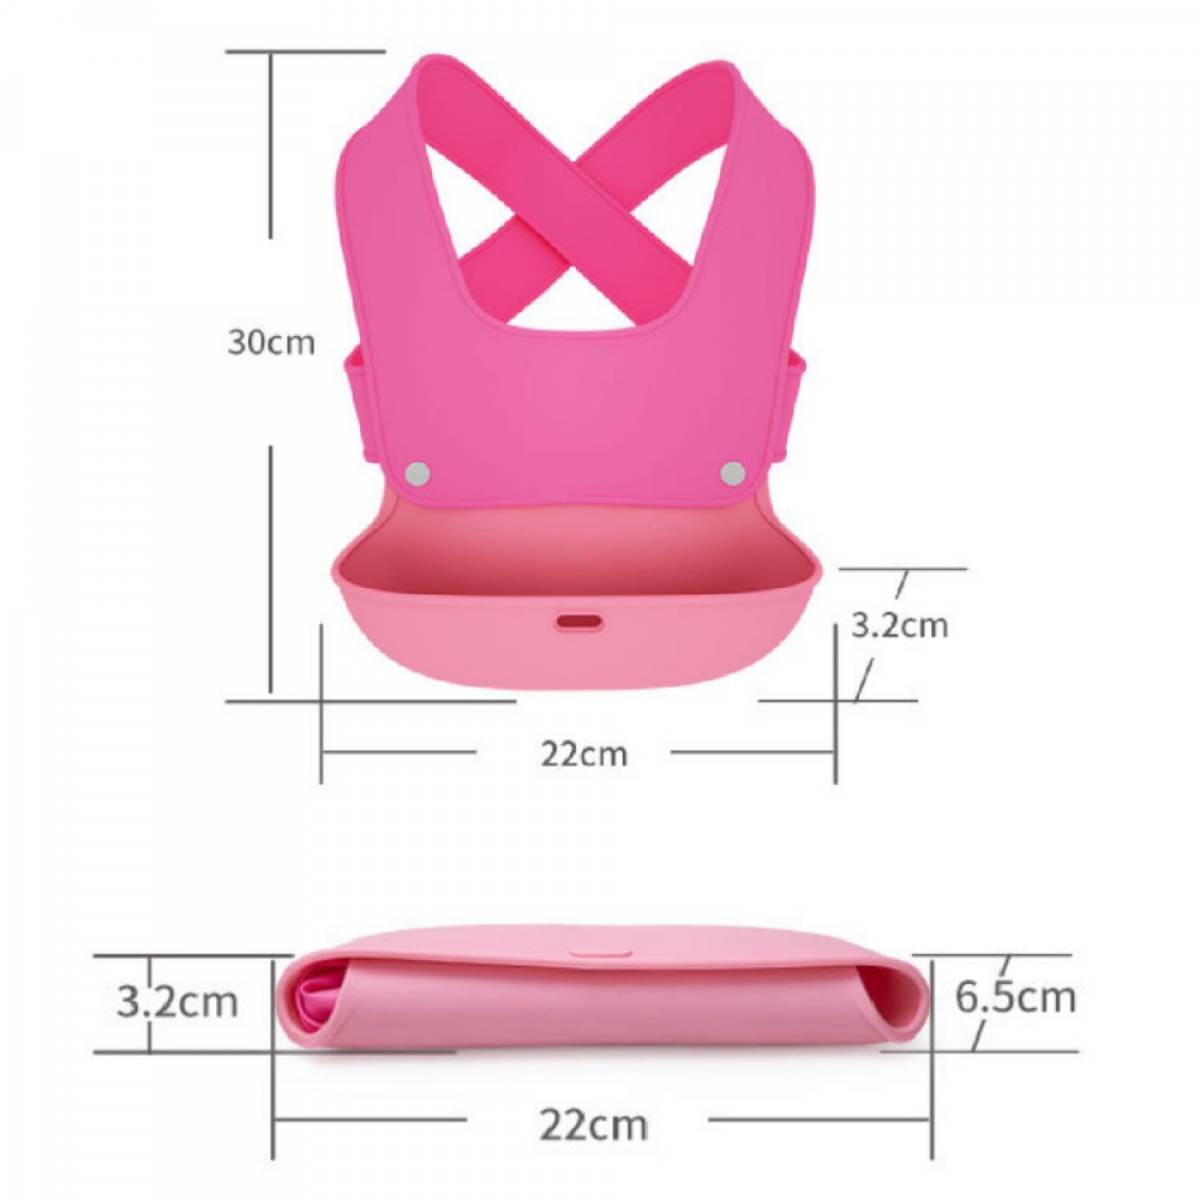 Abbie & Bobby™ Easy-Go 2 in 1 Waterproof Bib - Baby Bibs - Nursing Cover And Wear